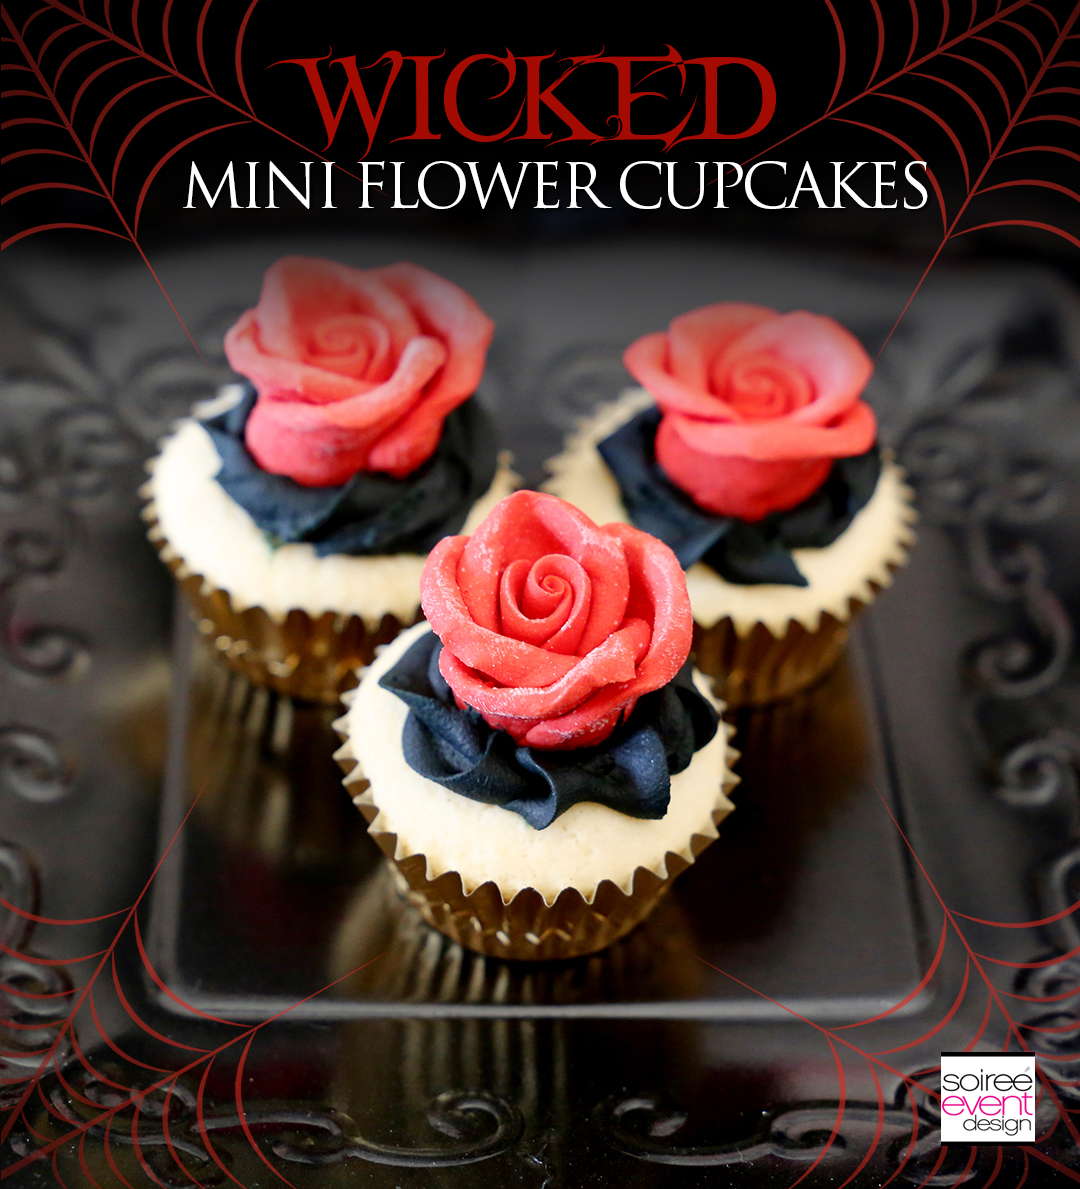 Wicked Mini Flower Cupcakes